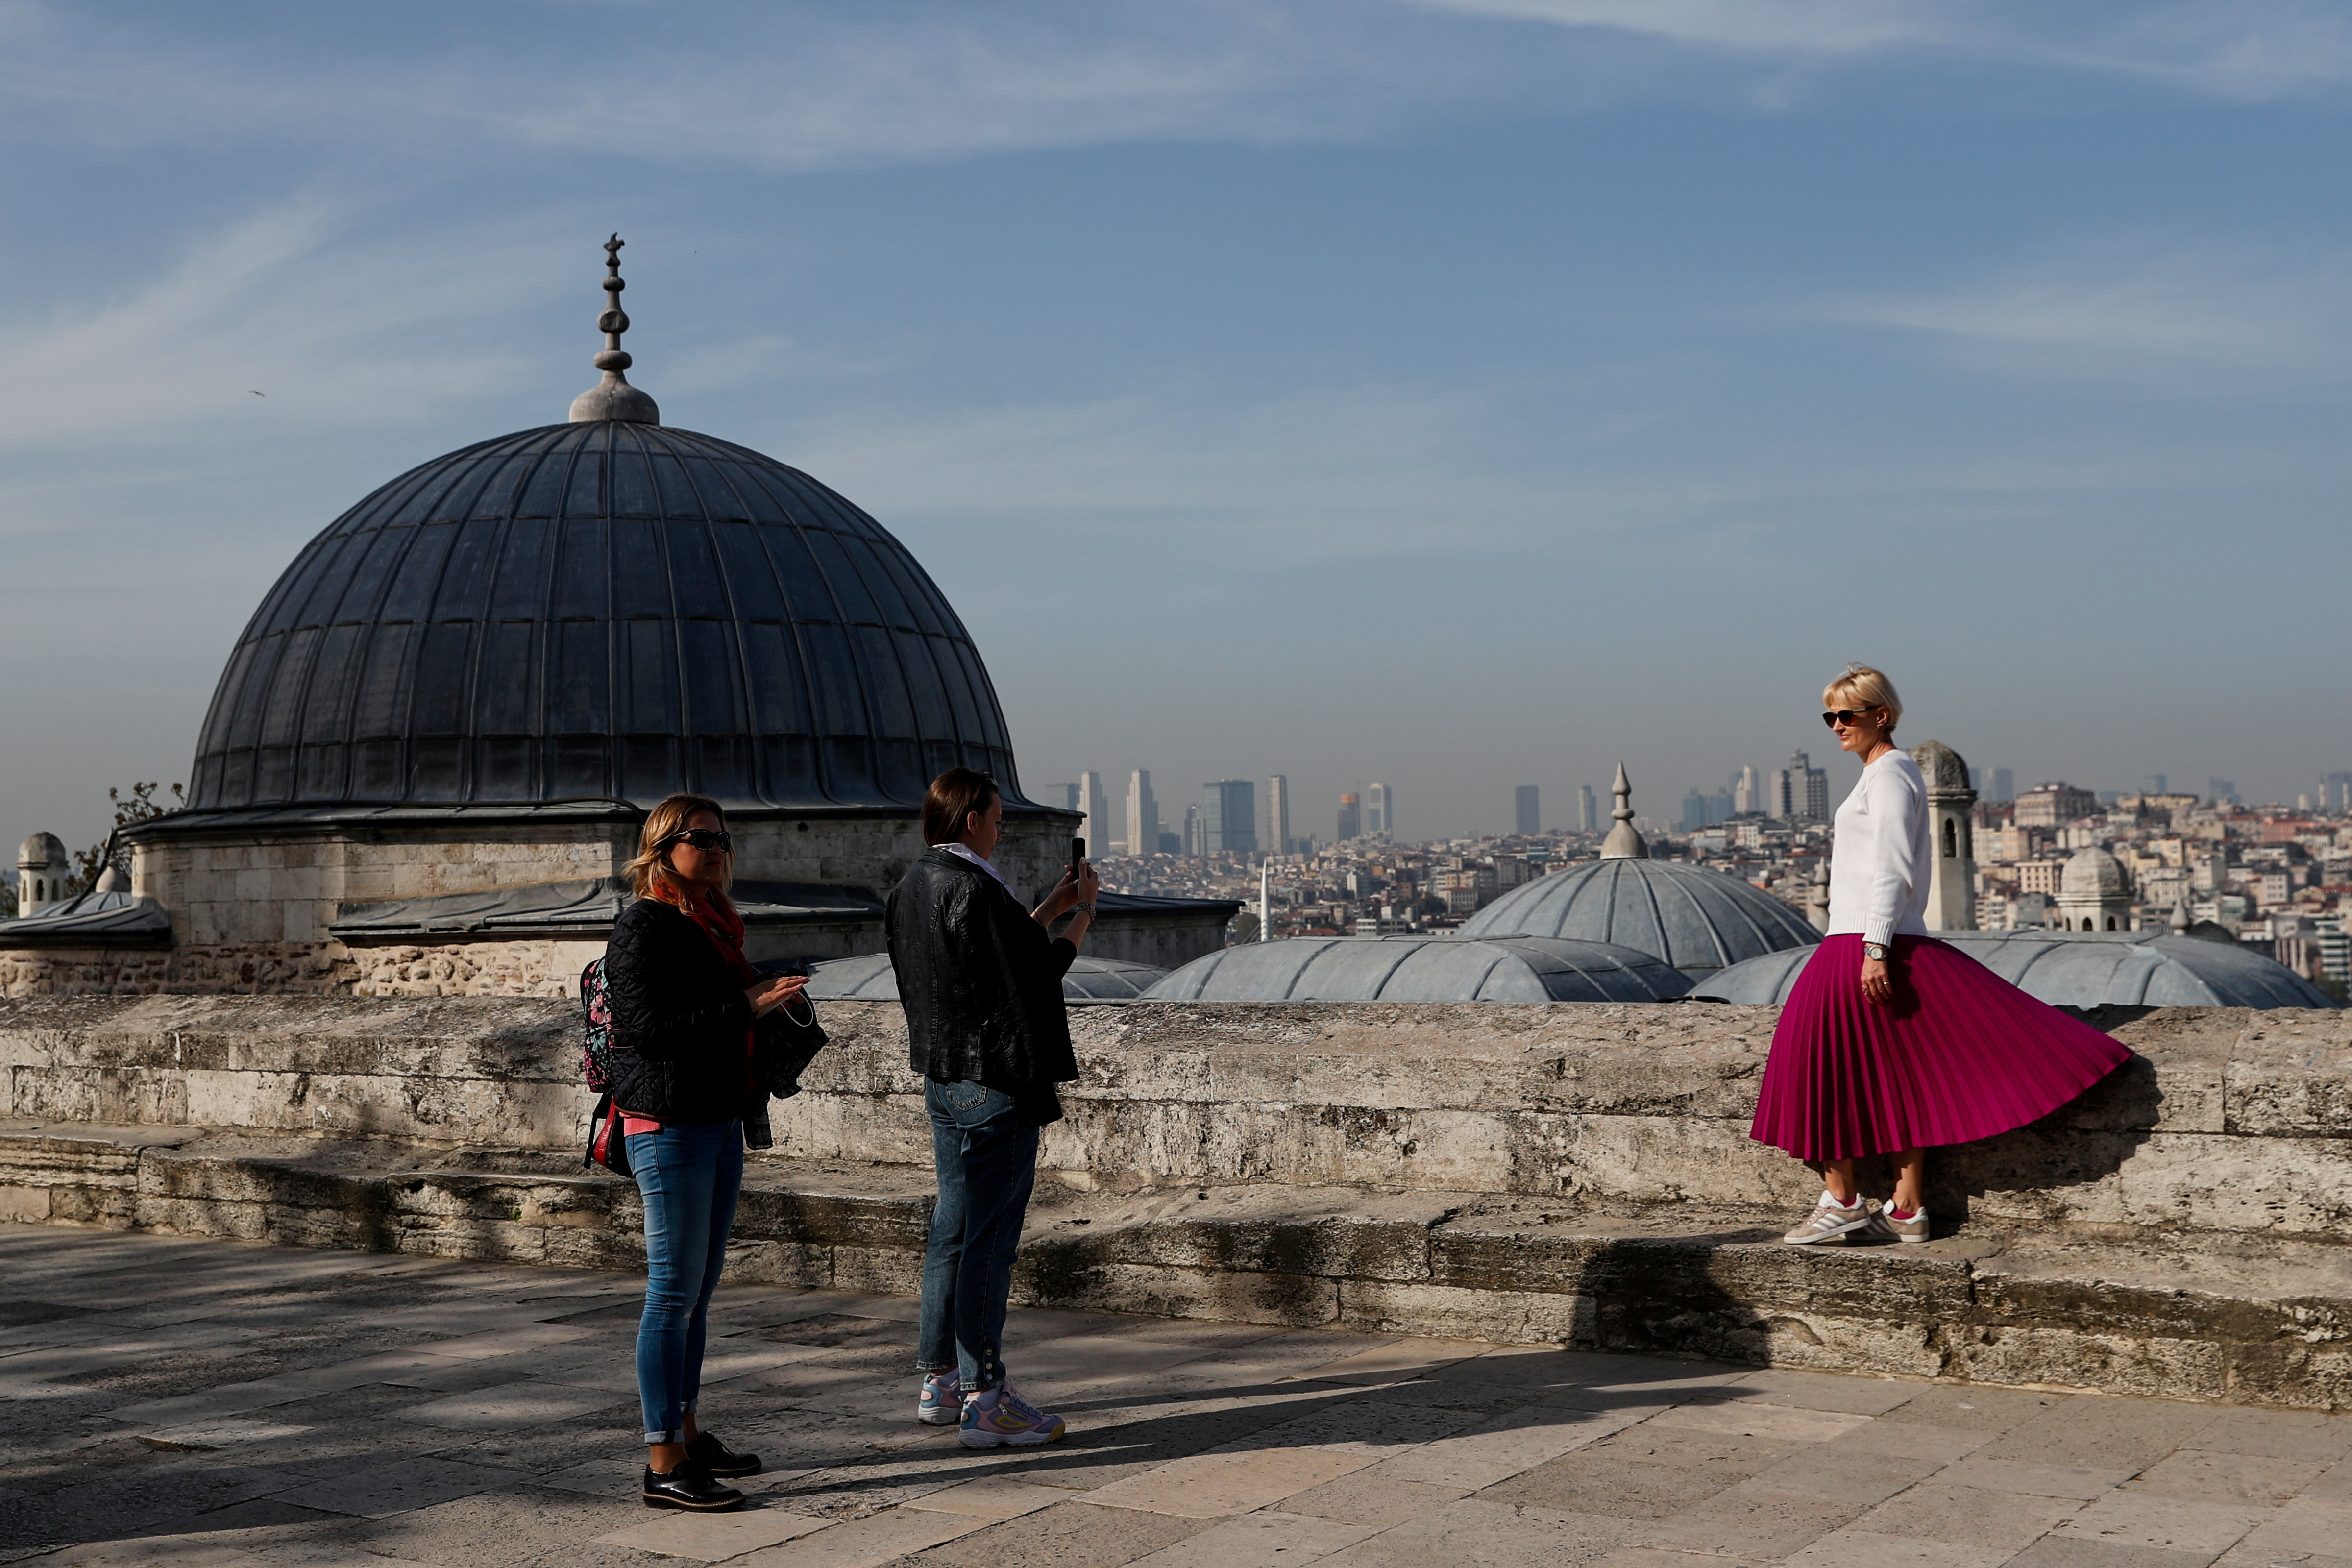 A tourist poses for a souvenir photo outside the historic Suleymaniye Mosque in Istanbul, Turkey, during a nationwide lockdown of the local population imposed to slow the spread of the coronavirus, April 30, 2021. REUTERS/Murad Sezer